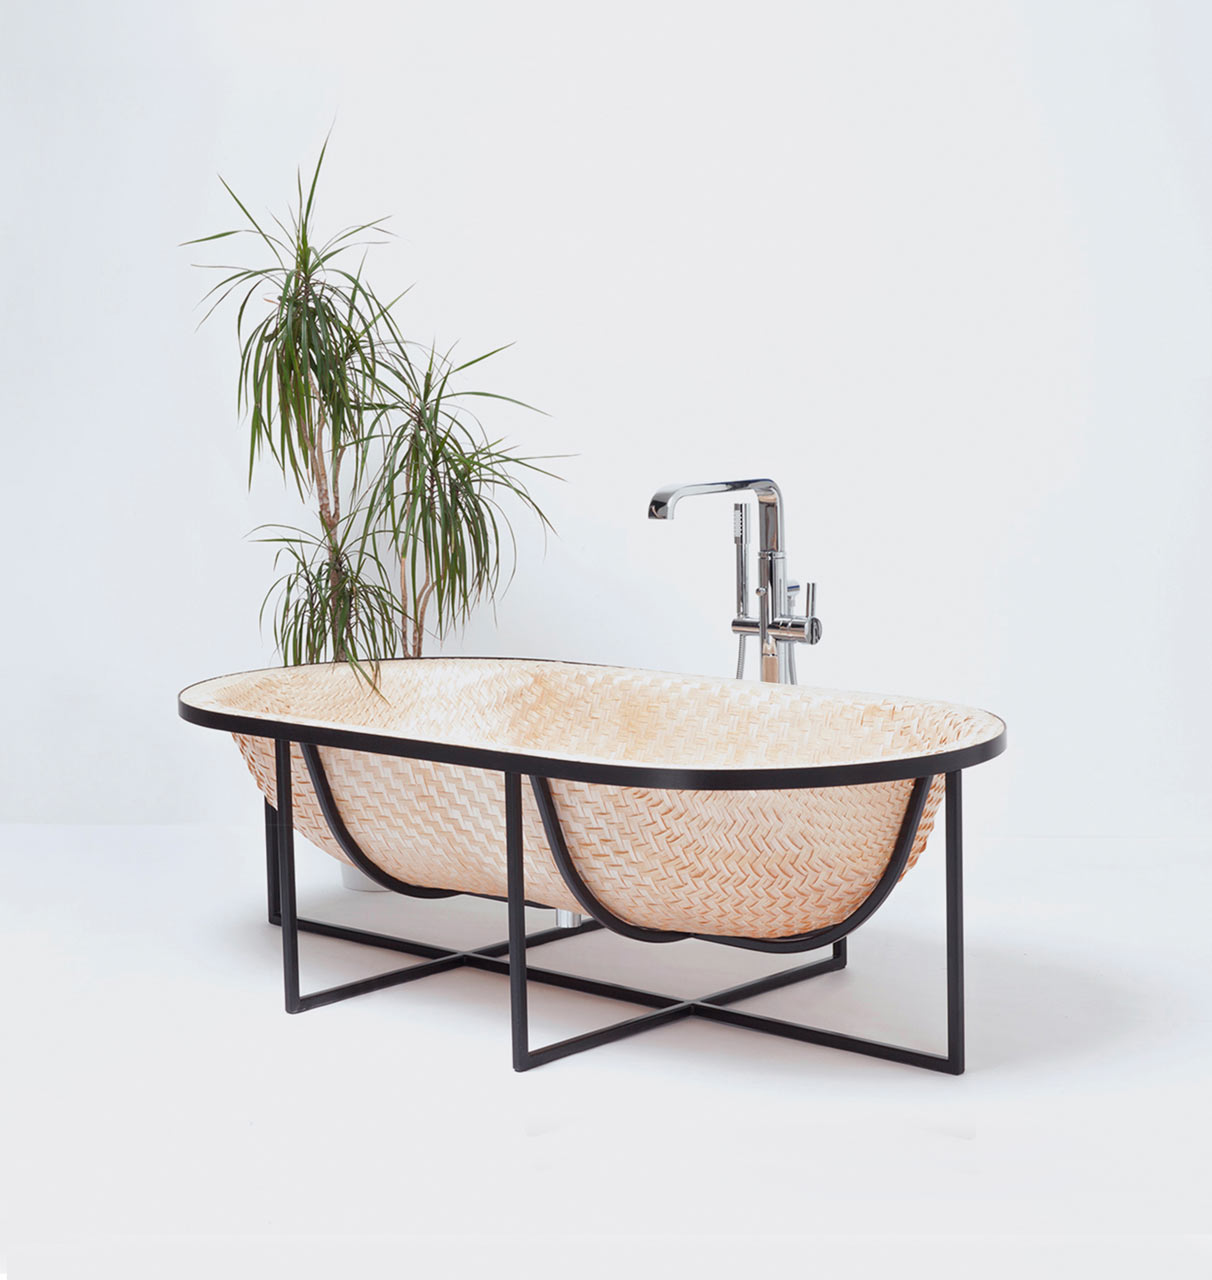 Picture Of asian boat inspired bathtub made of wood veneer  1